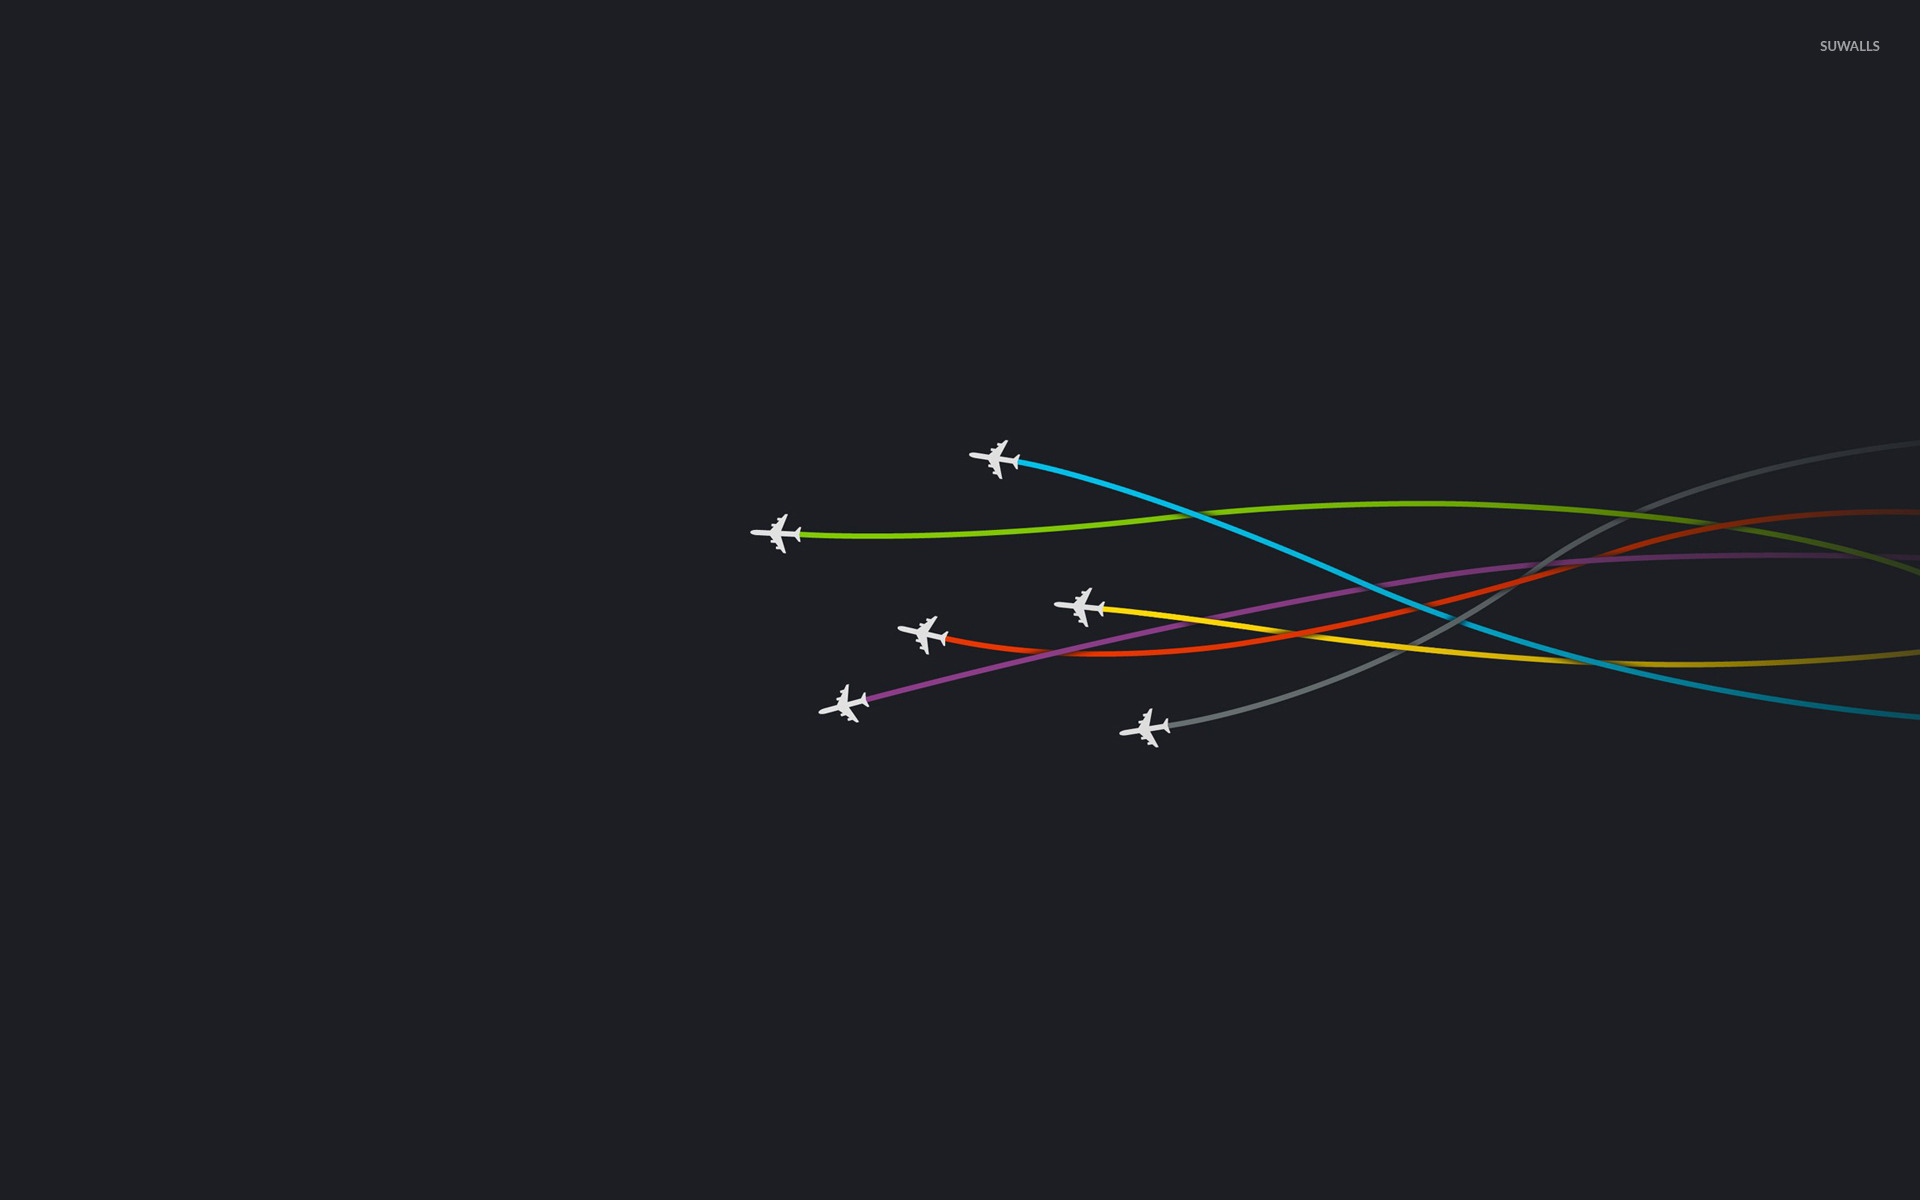 Airplanes wallpaper Minimalistic wallpapers 15381